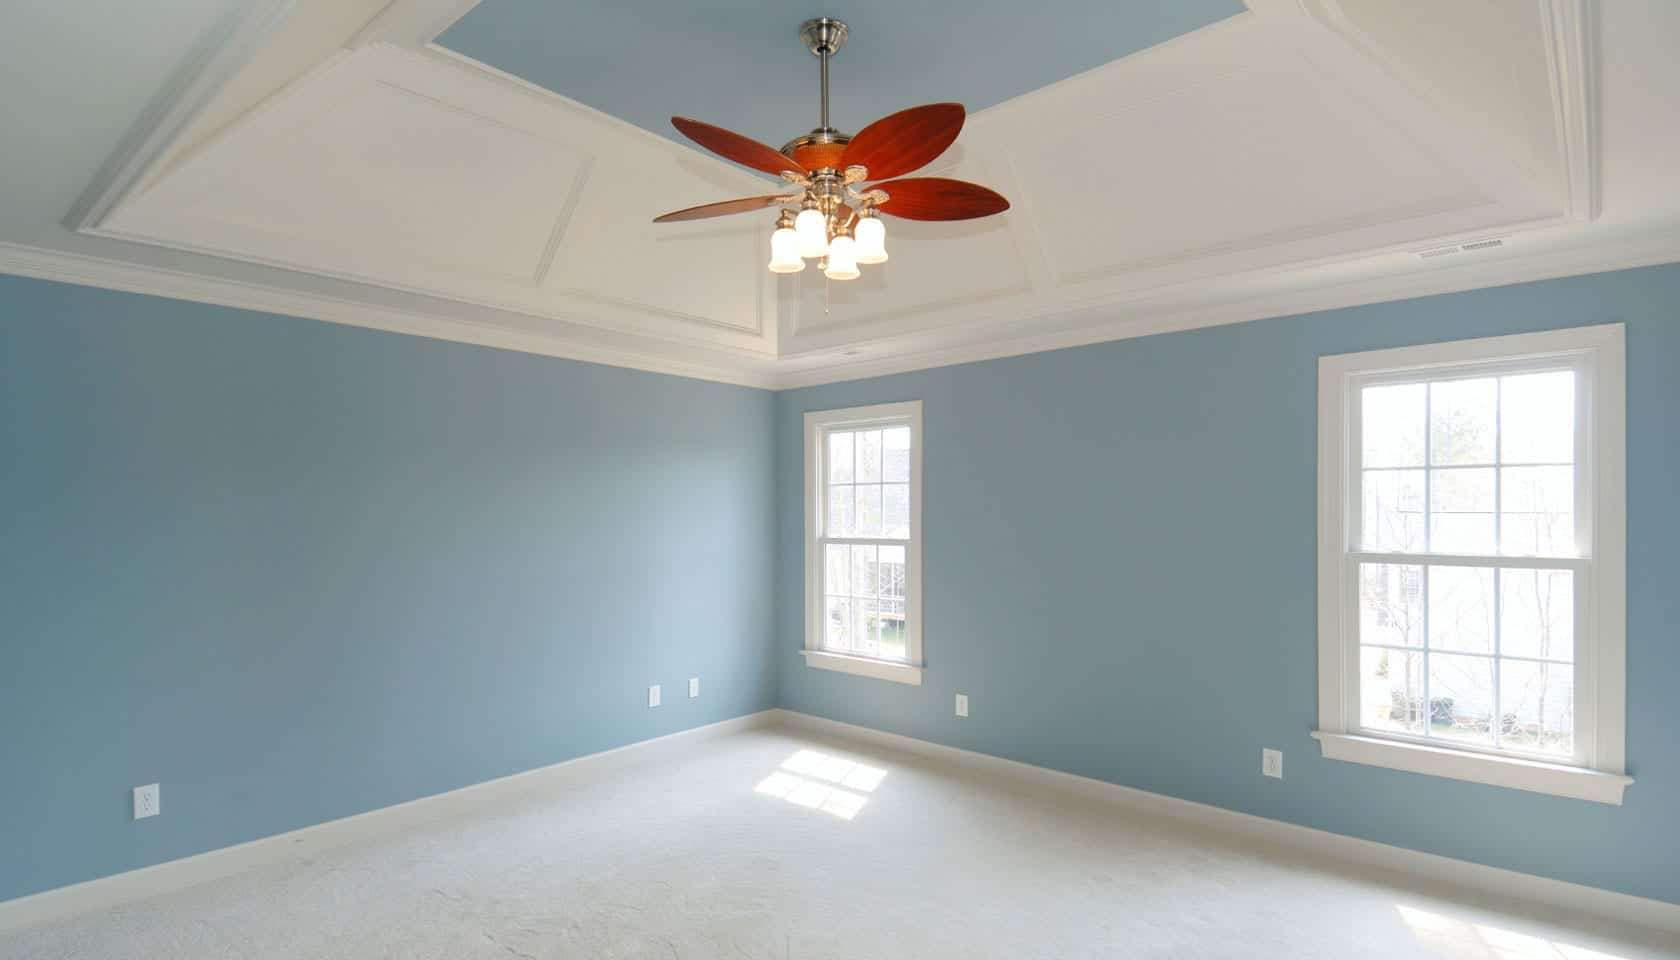 San Diego Double G Painters - Interior Painting